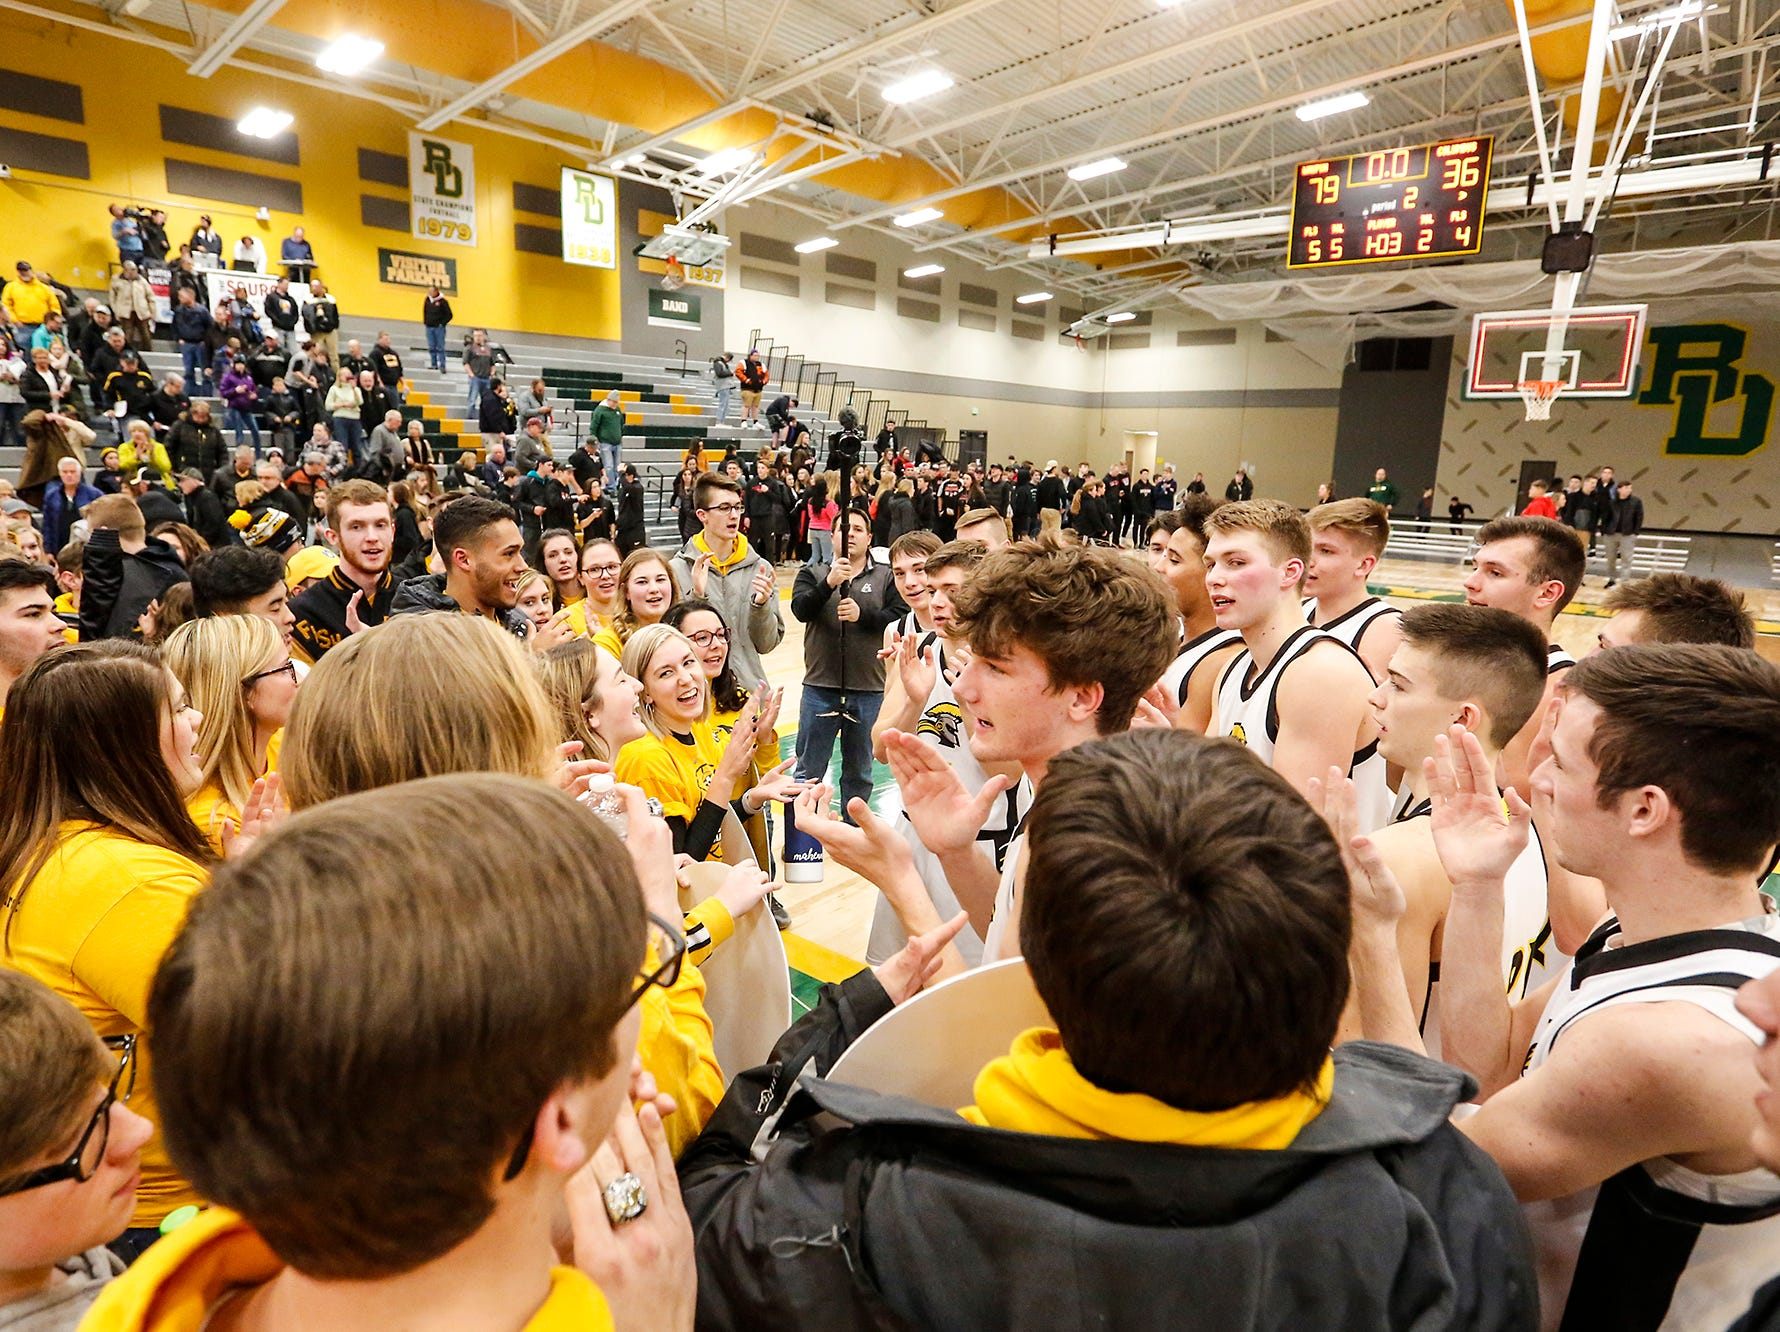 Waupun High School boys basketball players celebrate with Waupun students after their WIAA division 3 sectional semi-final game against Columbus High School Thursday, March 7, 2019 in Beaver Dam, Wis. Waupun won the game 79-36. Doug Raflik/USA TODAY NETWORK-Wisconsin